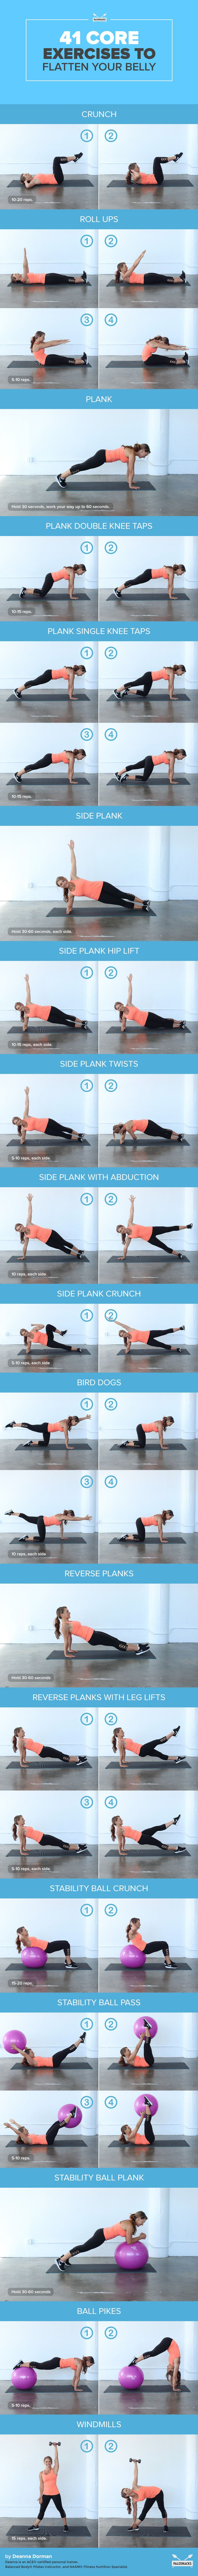 41_Core_Exercises_to_Flatten_Your_Belly-infog